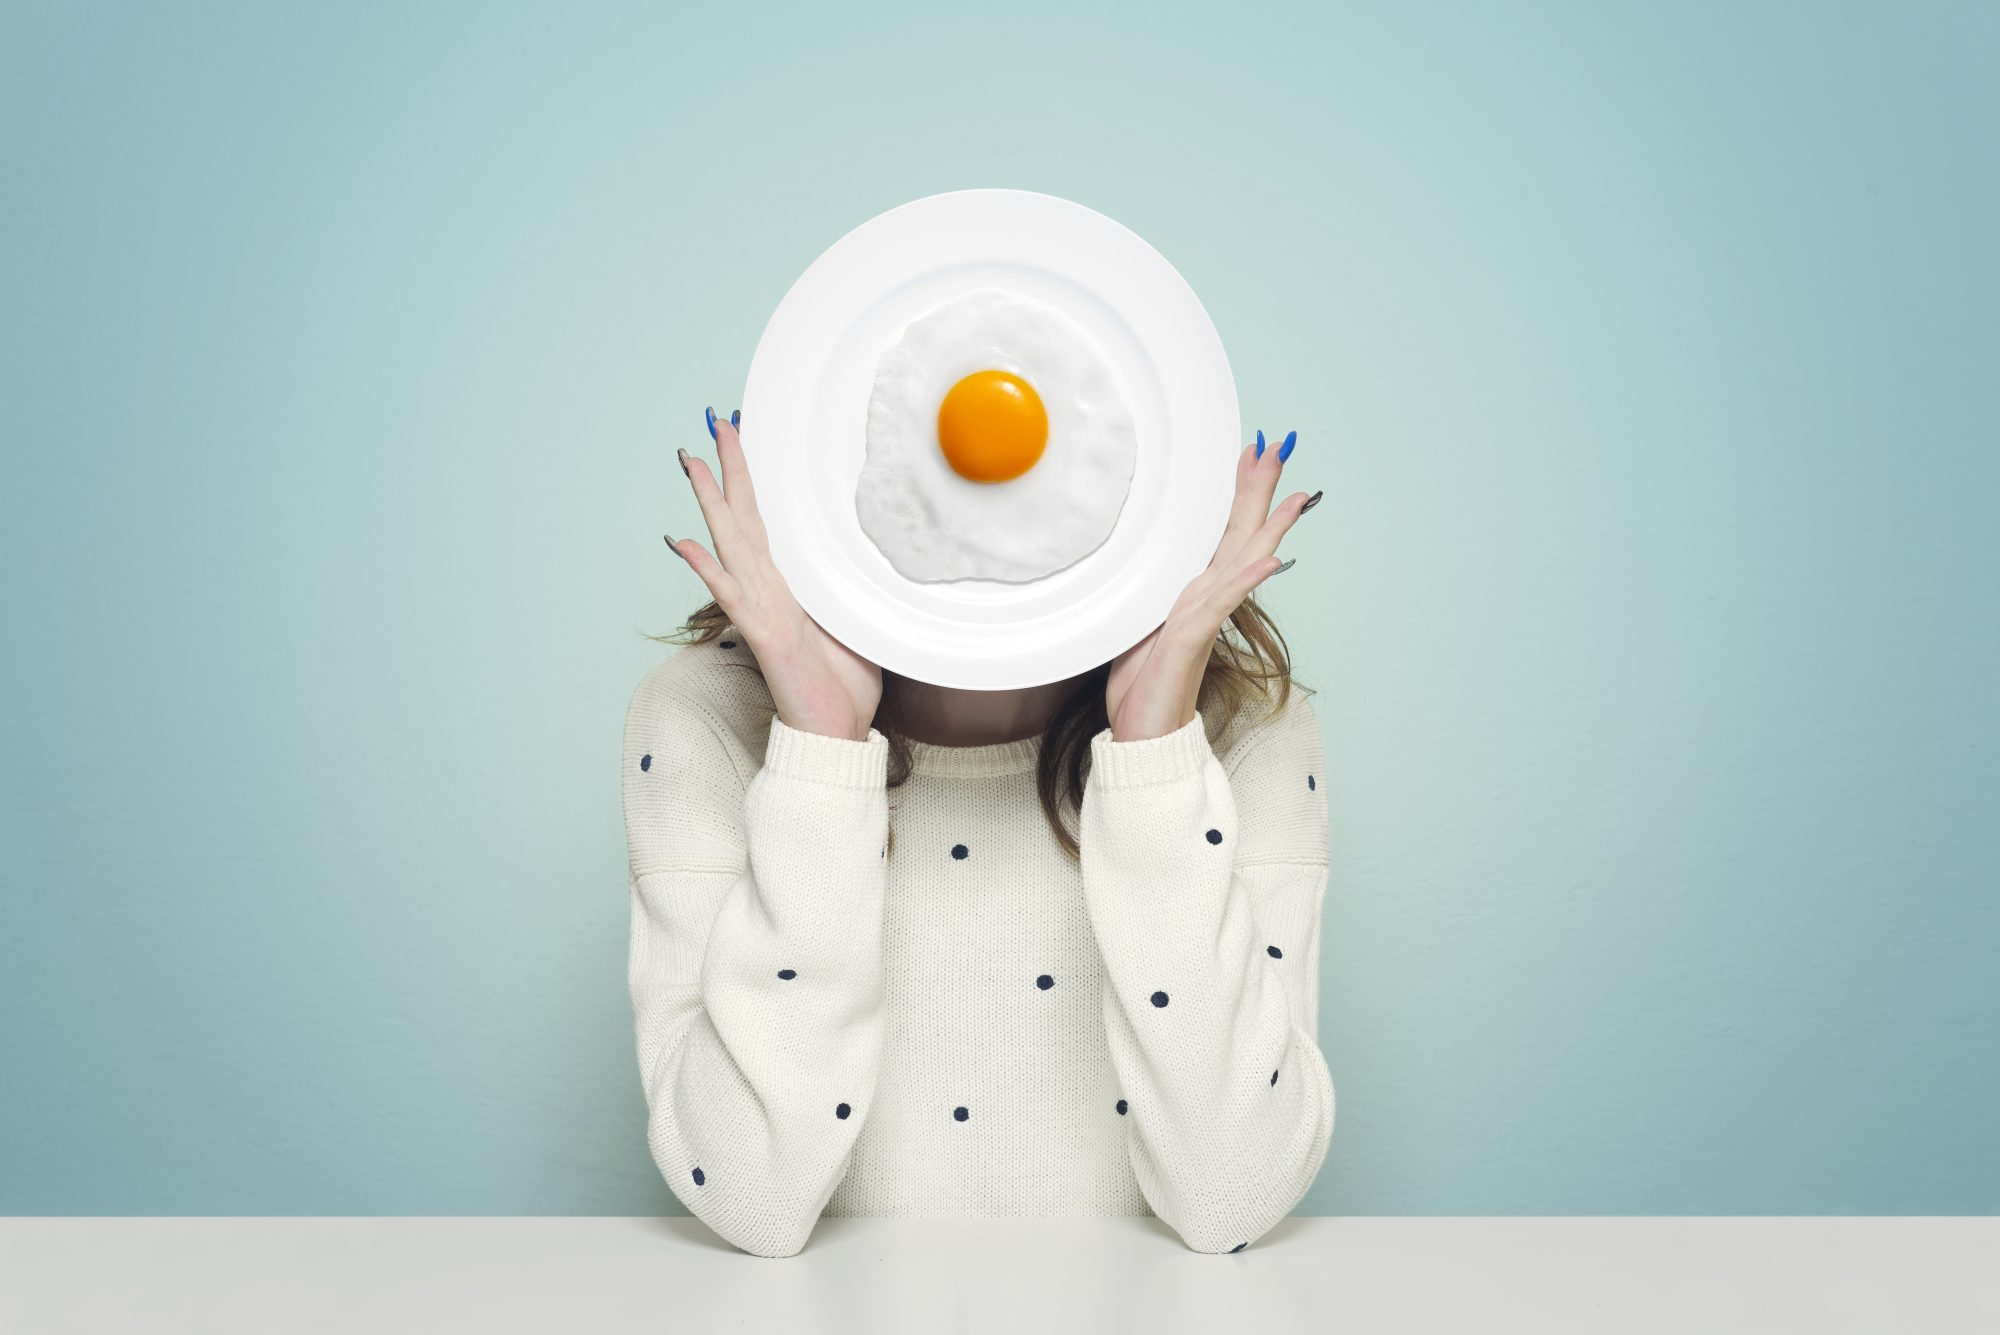 Woman hiding face with food plate egg